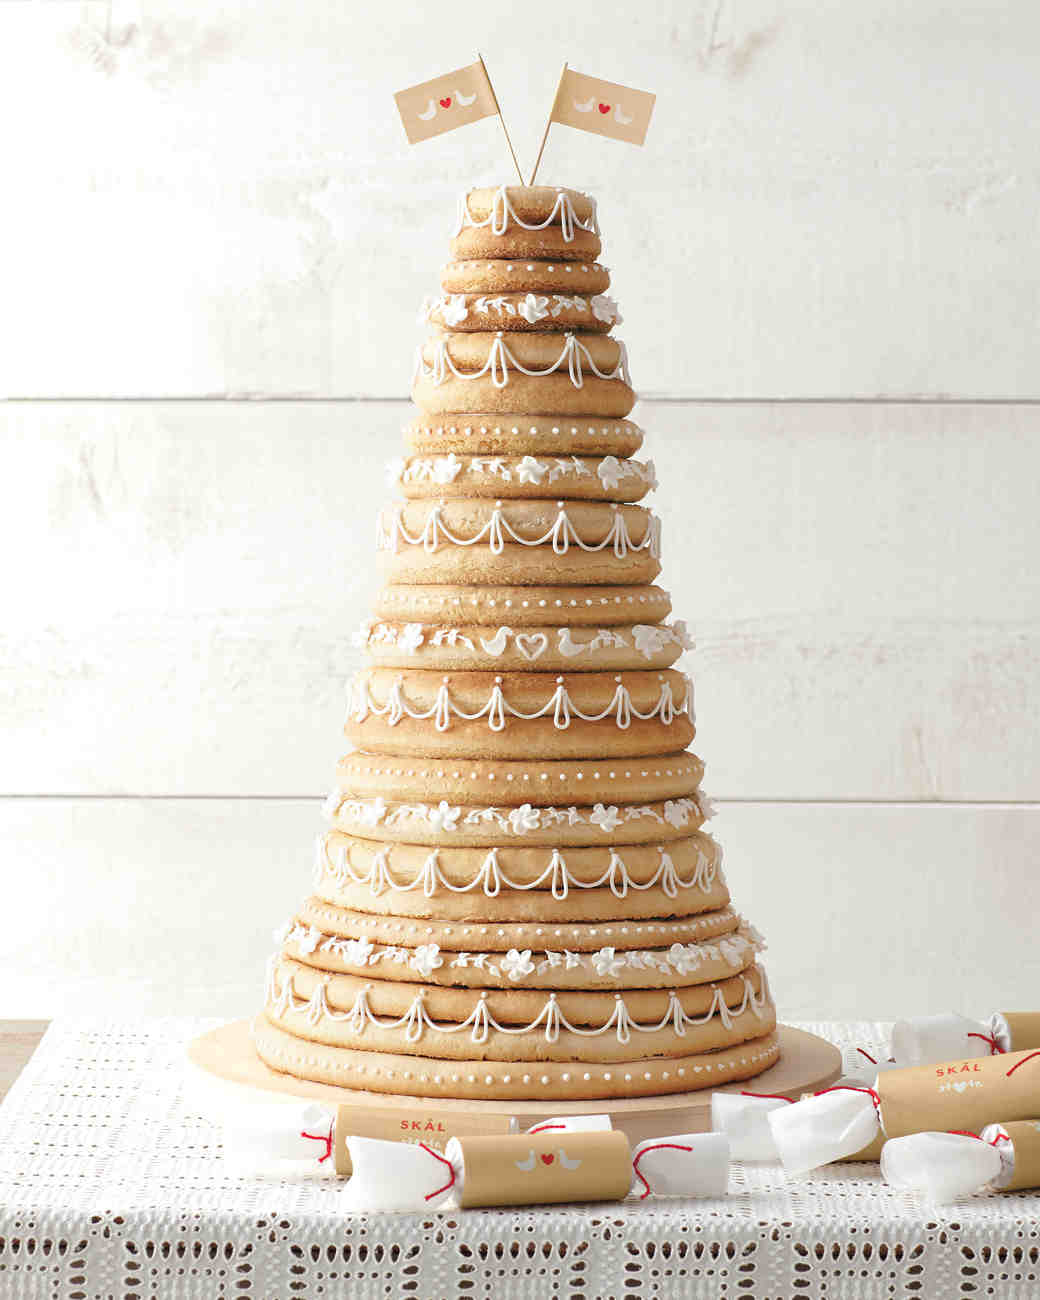 kransekake norwegian wedding cake worldly batters 5 wedding cakes from around the globe 16666